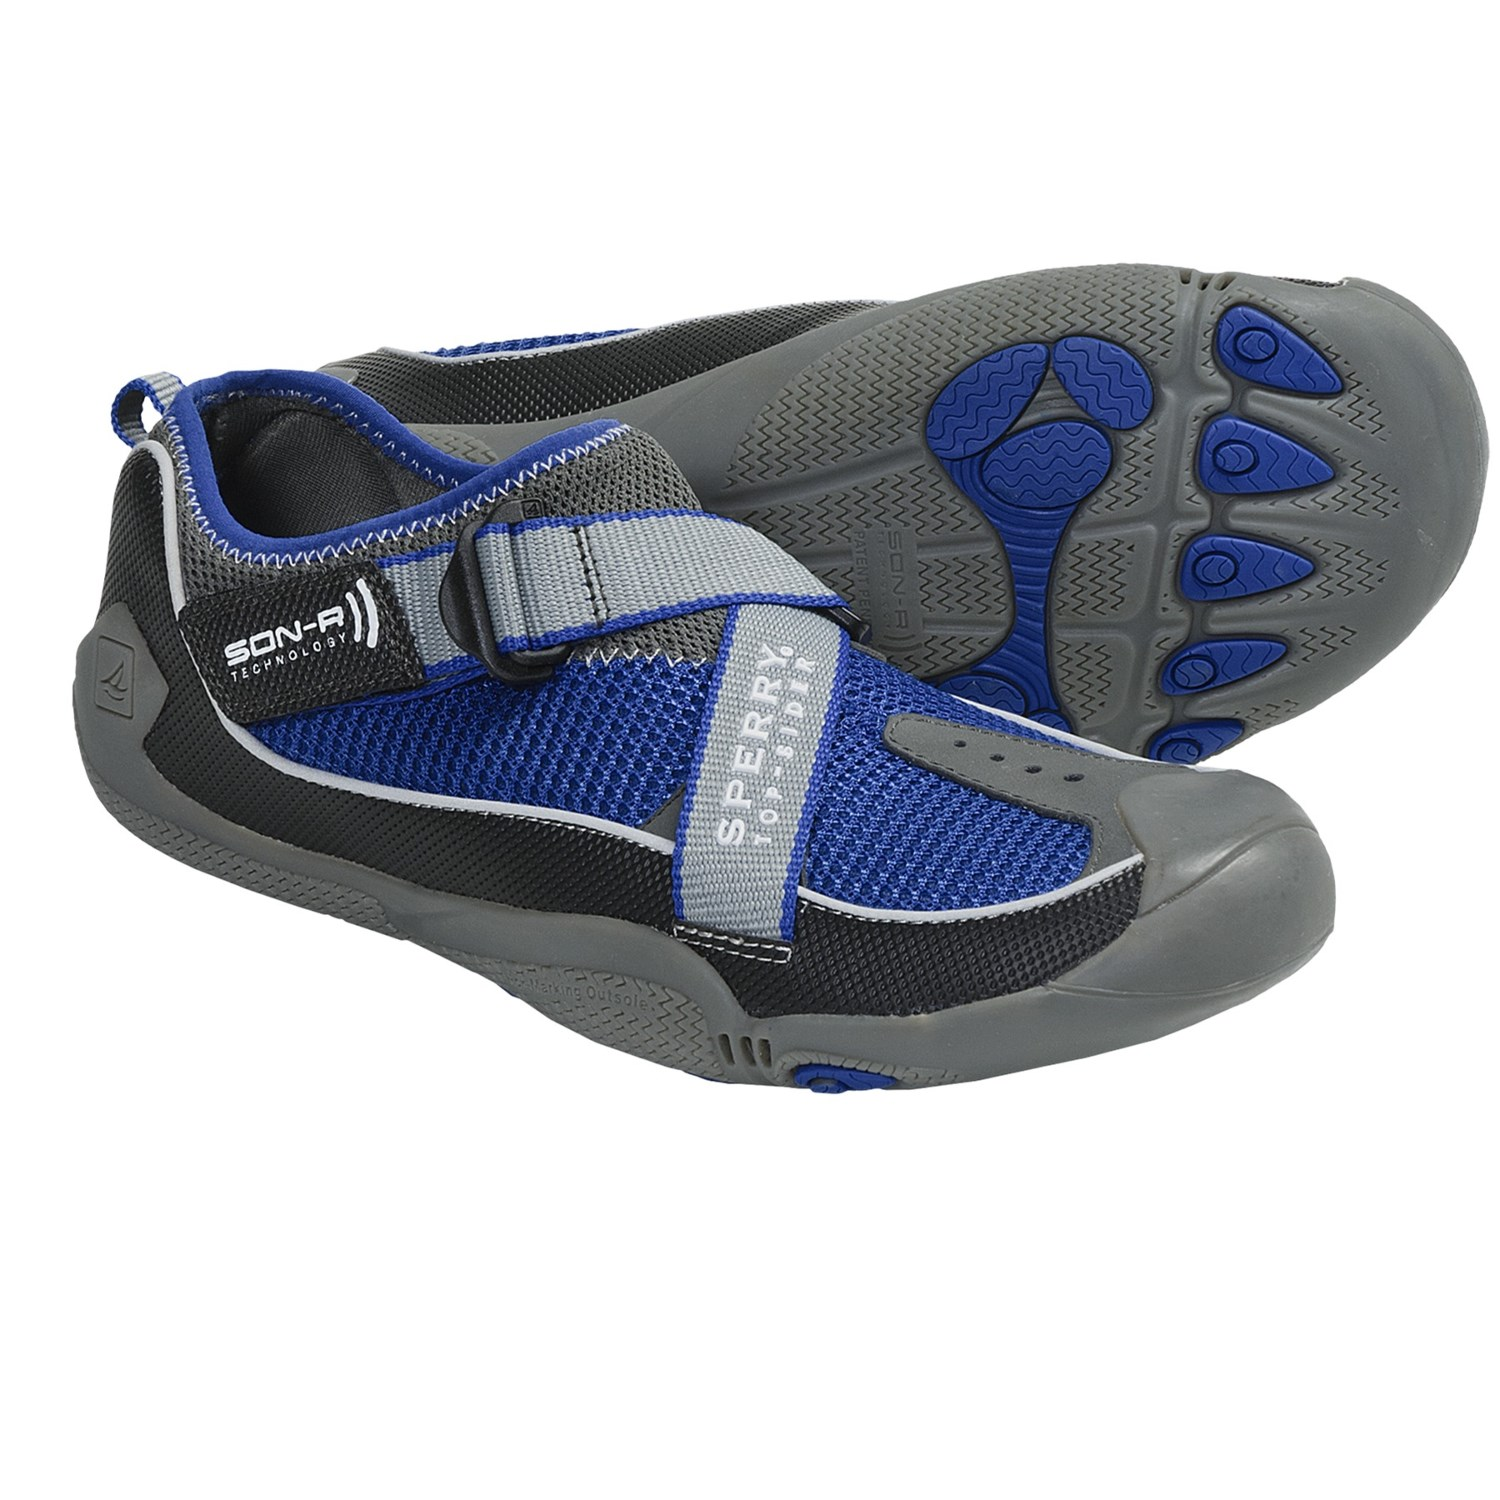 Sider SON-R Feedback Bootie Low Water Shoes (For Men) in Black/Blue